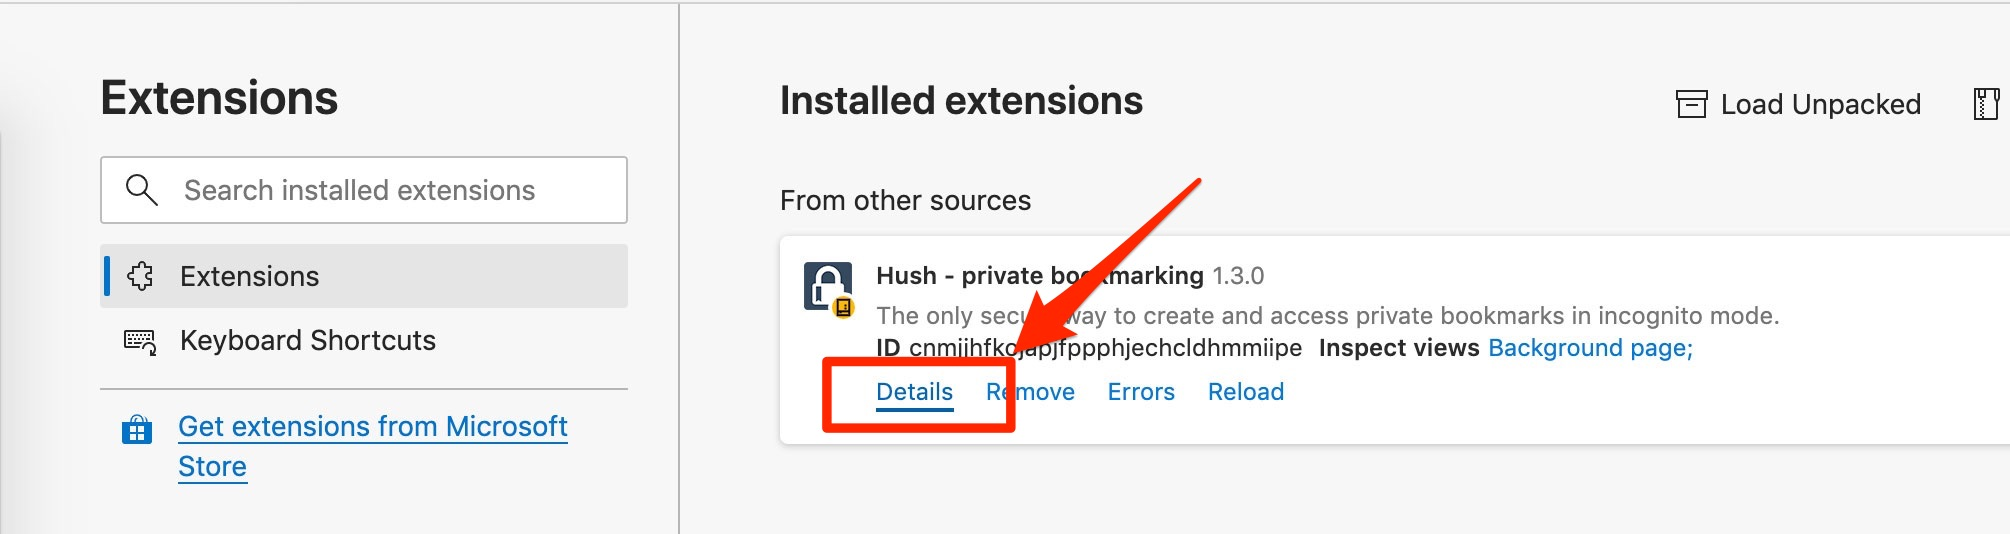 hush_extensions_page